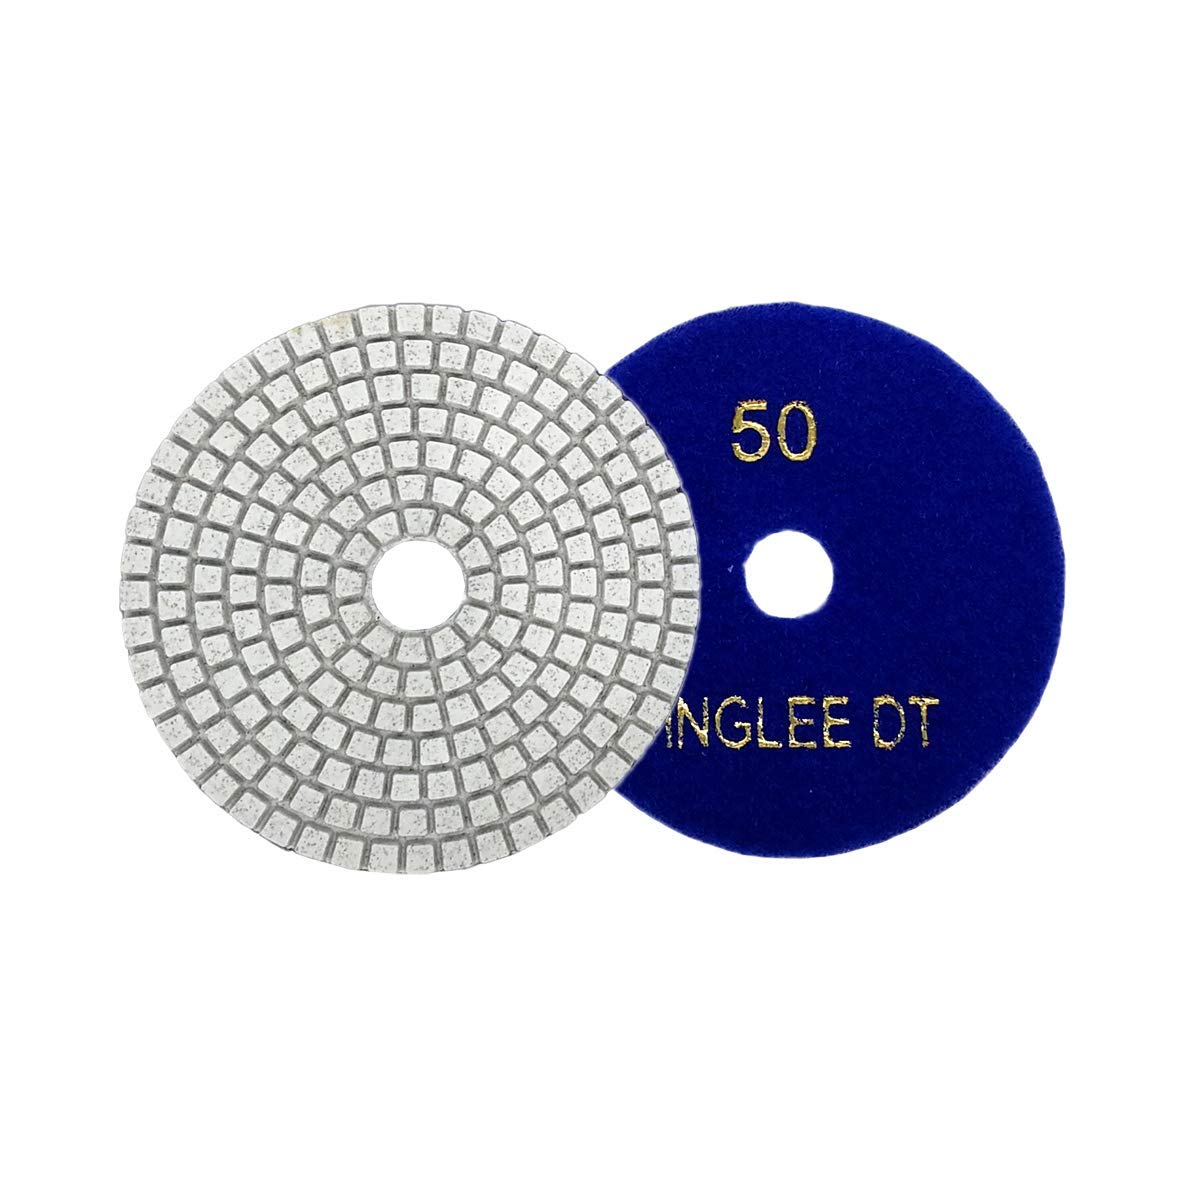 FINGLEE DT 4 inch Diamond Dry Wet Polishing Pads Diamond Resin discs for Granite Marble Quartz (3pcs Grit50)